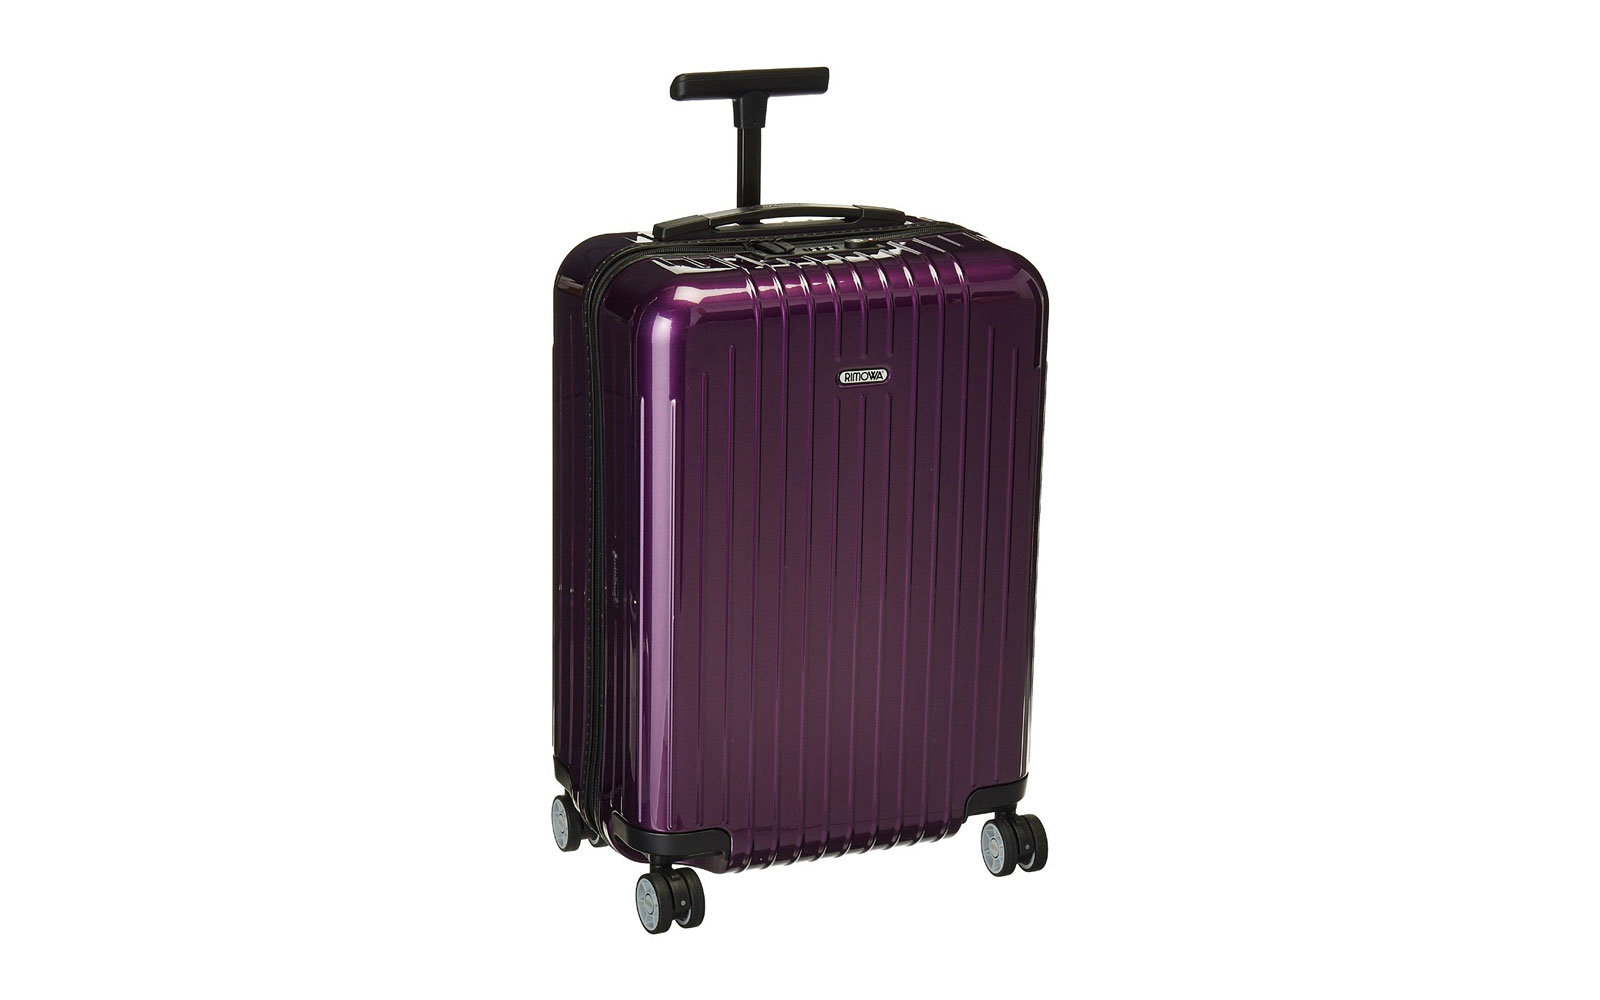 cute purple luggage